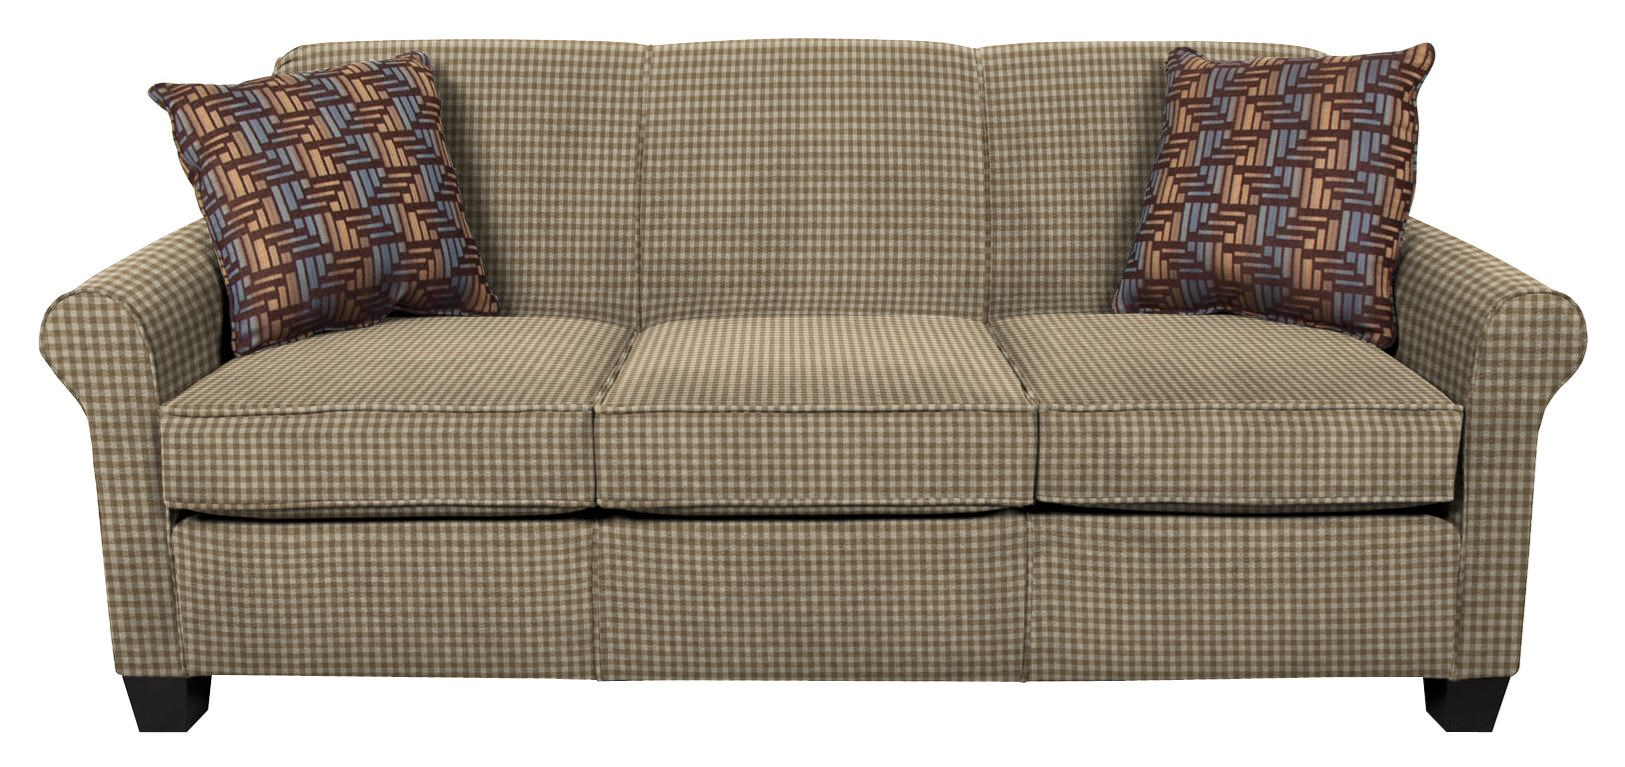 England Angie  Sleeper Sofa - Item Number: 4639-5040